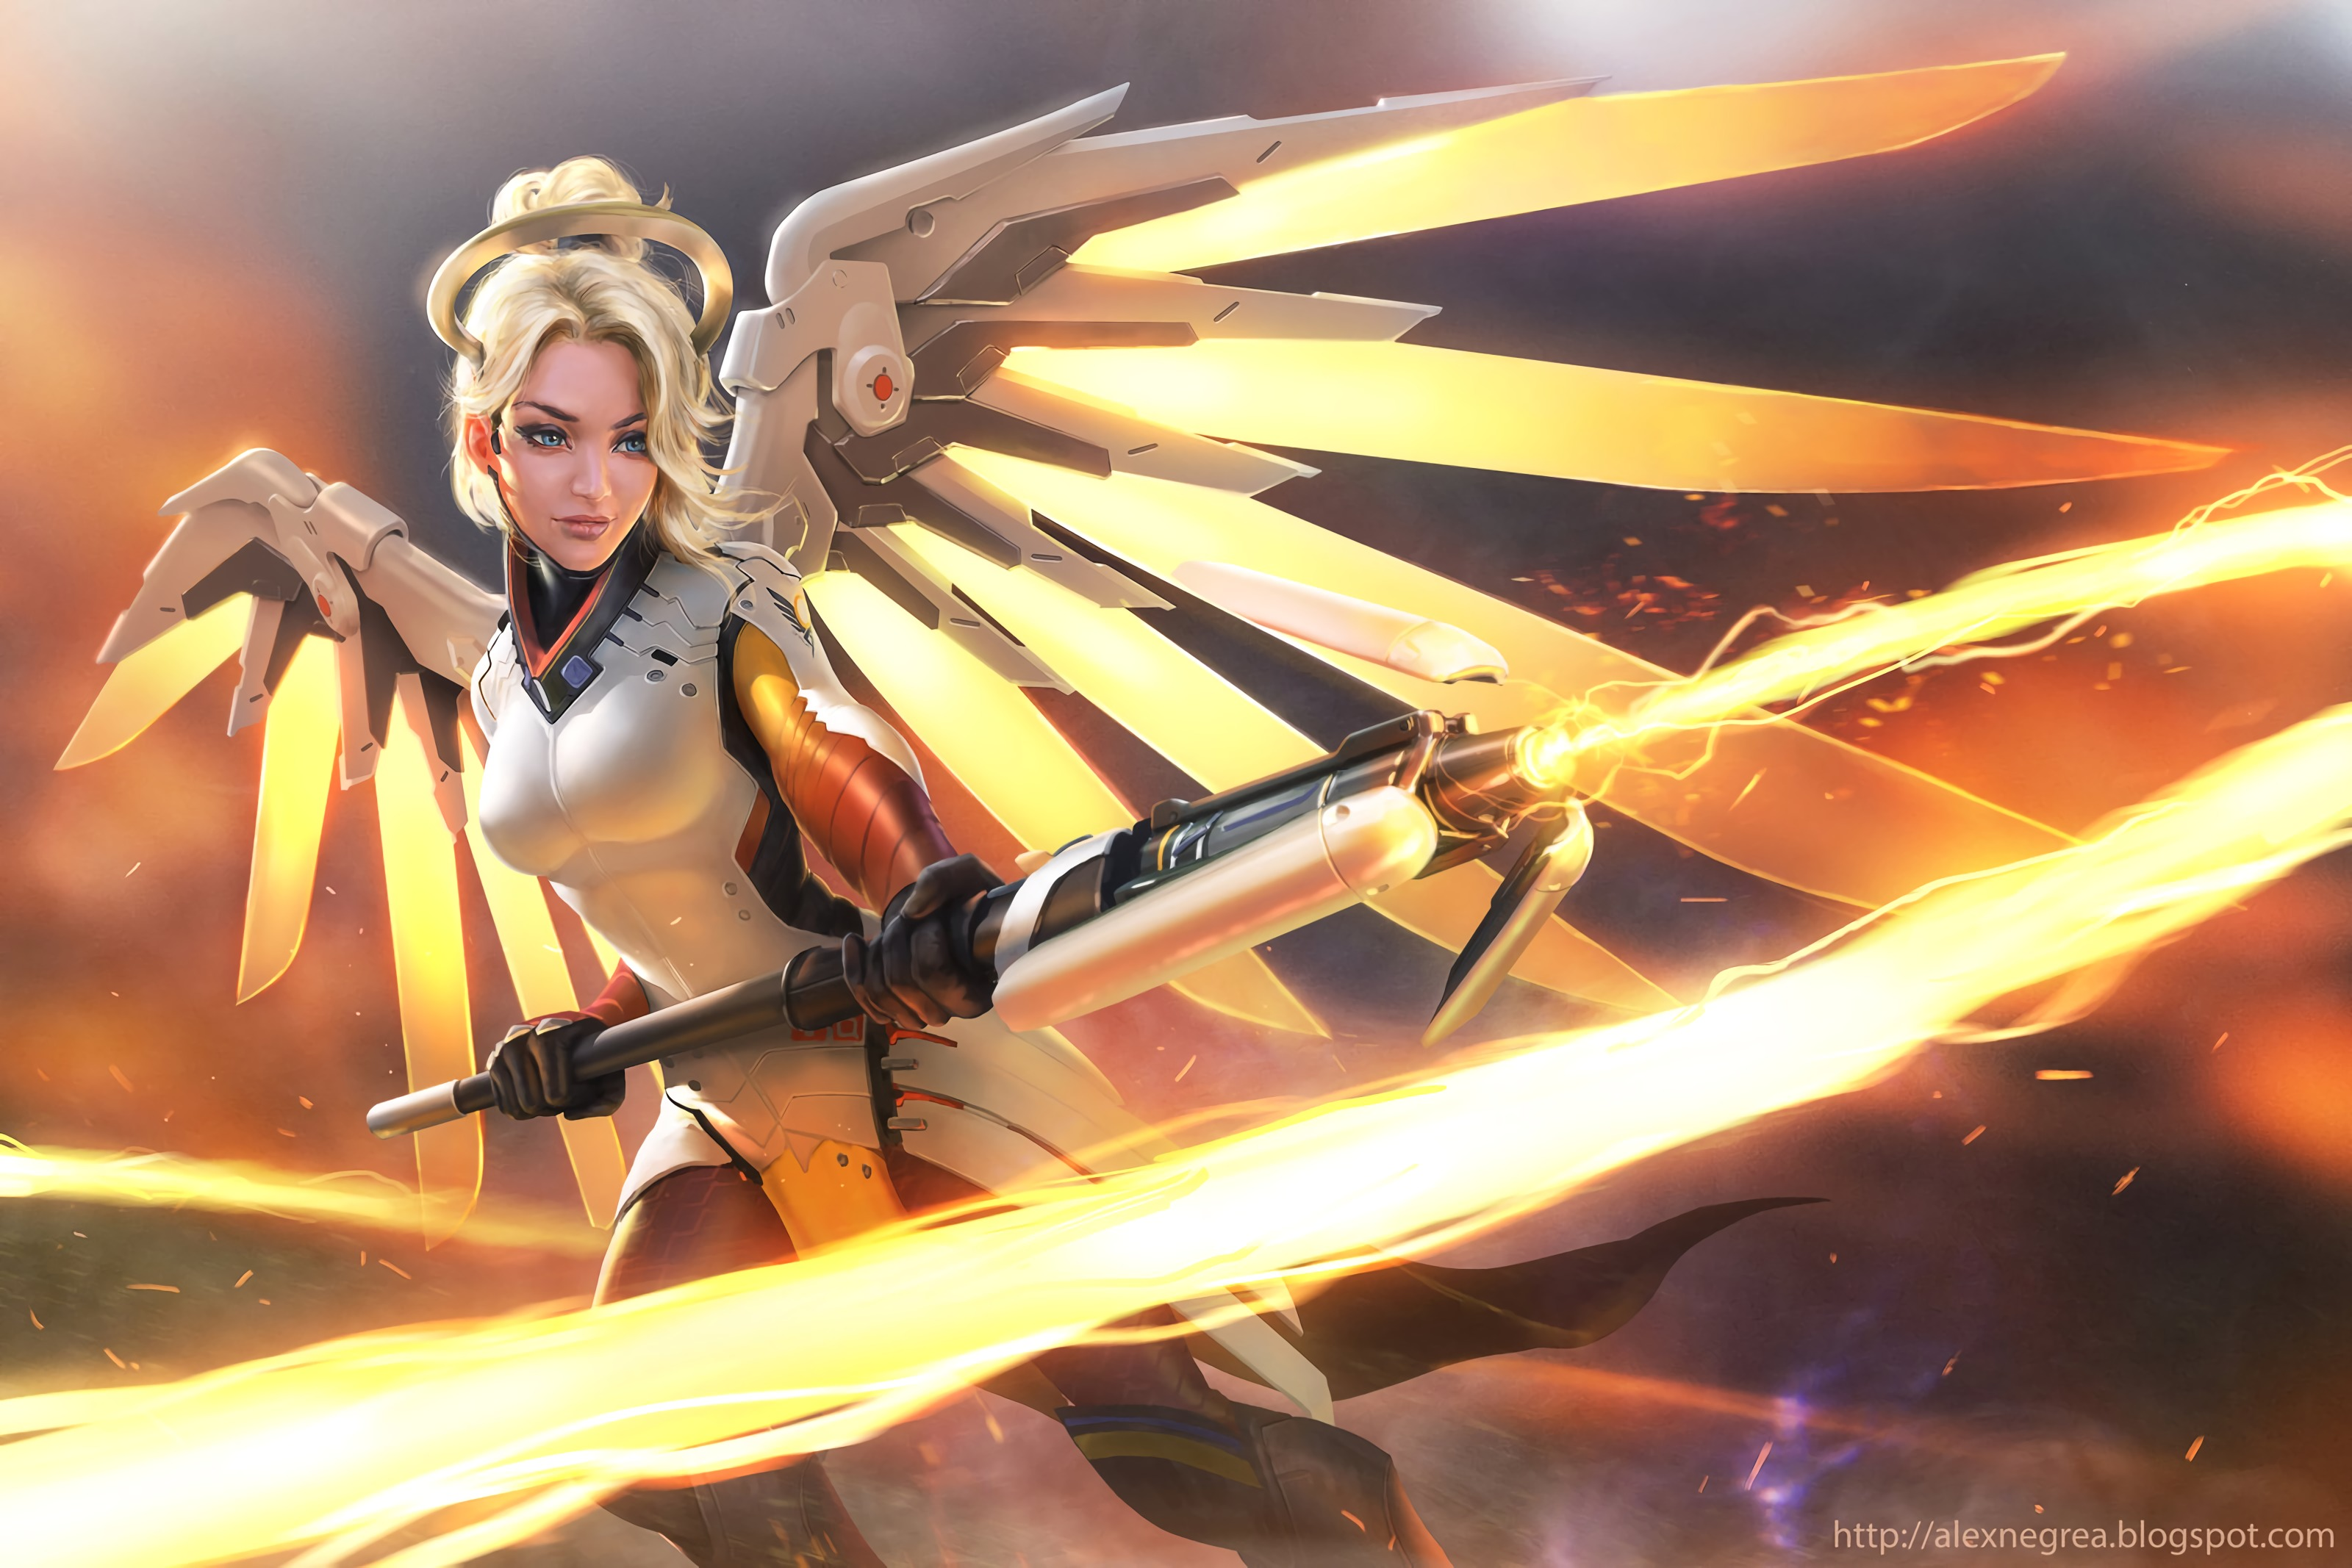 268 Mercy Overwatch Hd Wallpapers Background Images Wallpaper Rh Wall  Alphacoders Com Fortnite Wallpaper Overwatch Heroes Wallpaper